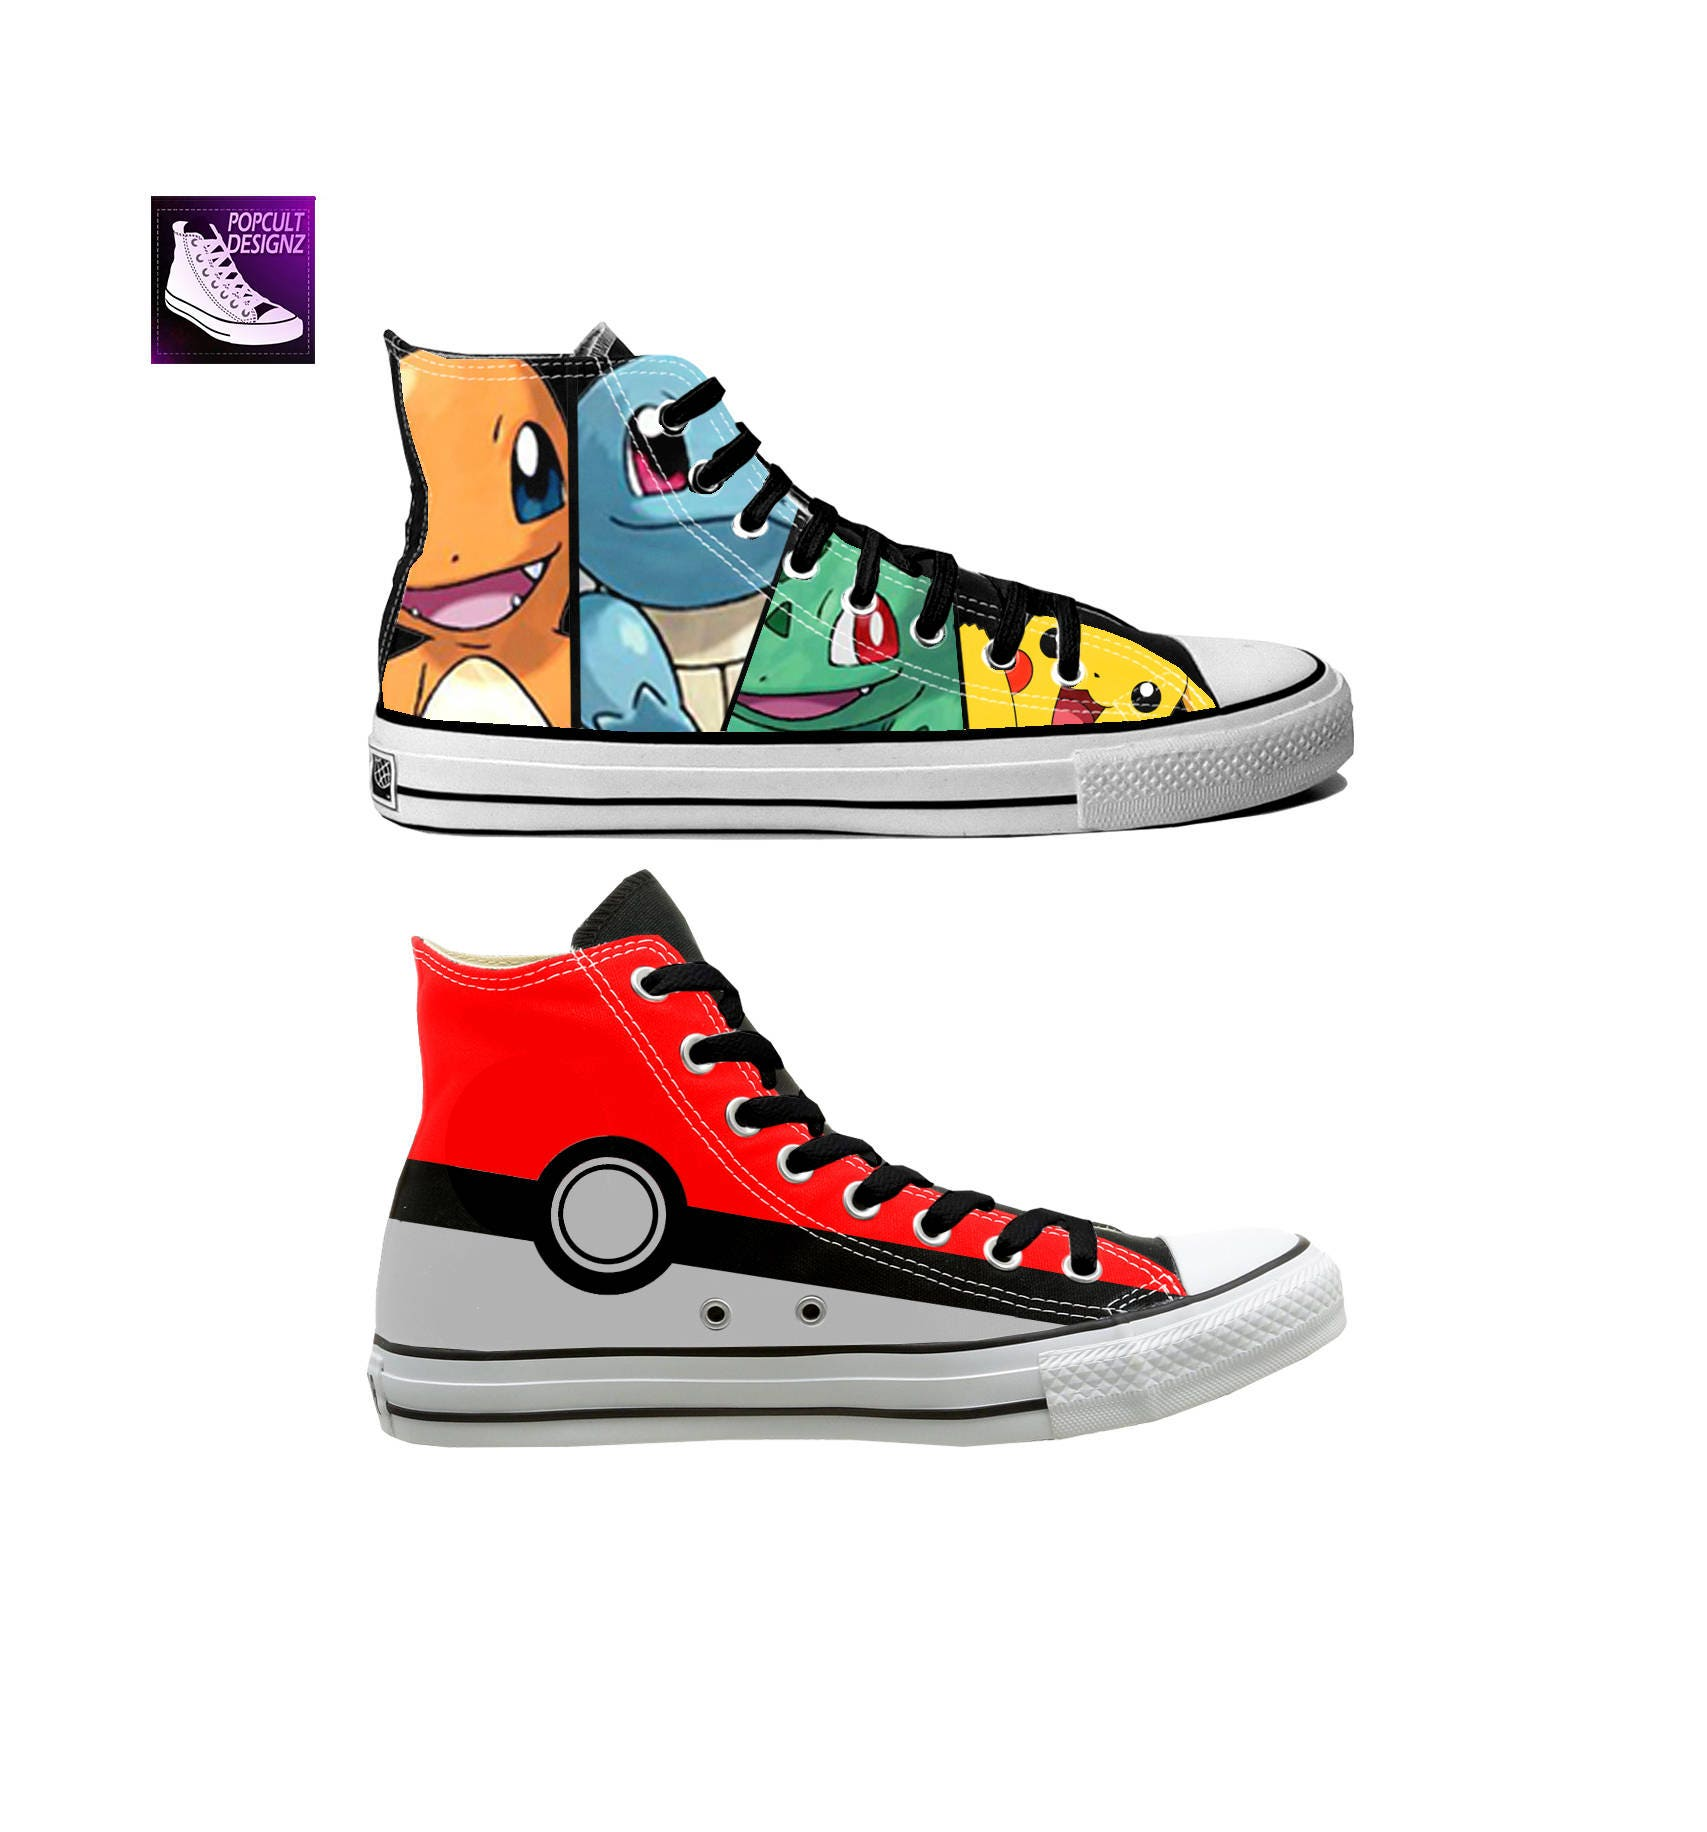 Anime/Video Converse Game Hand Painted Canvas Converse Anime/Video Shoes d49cca